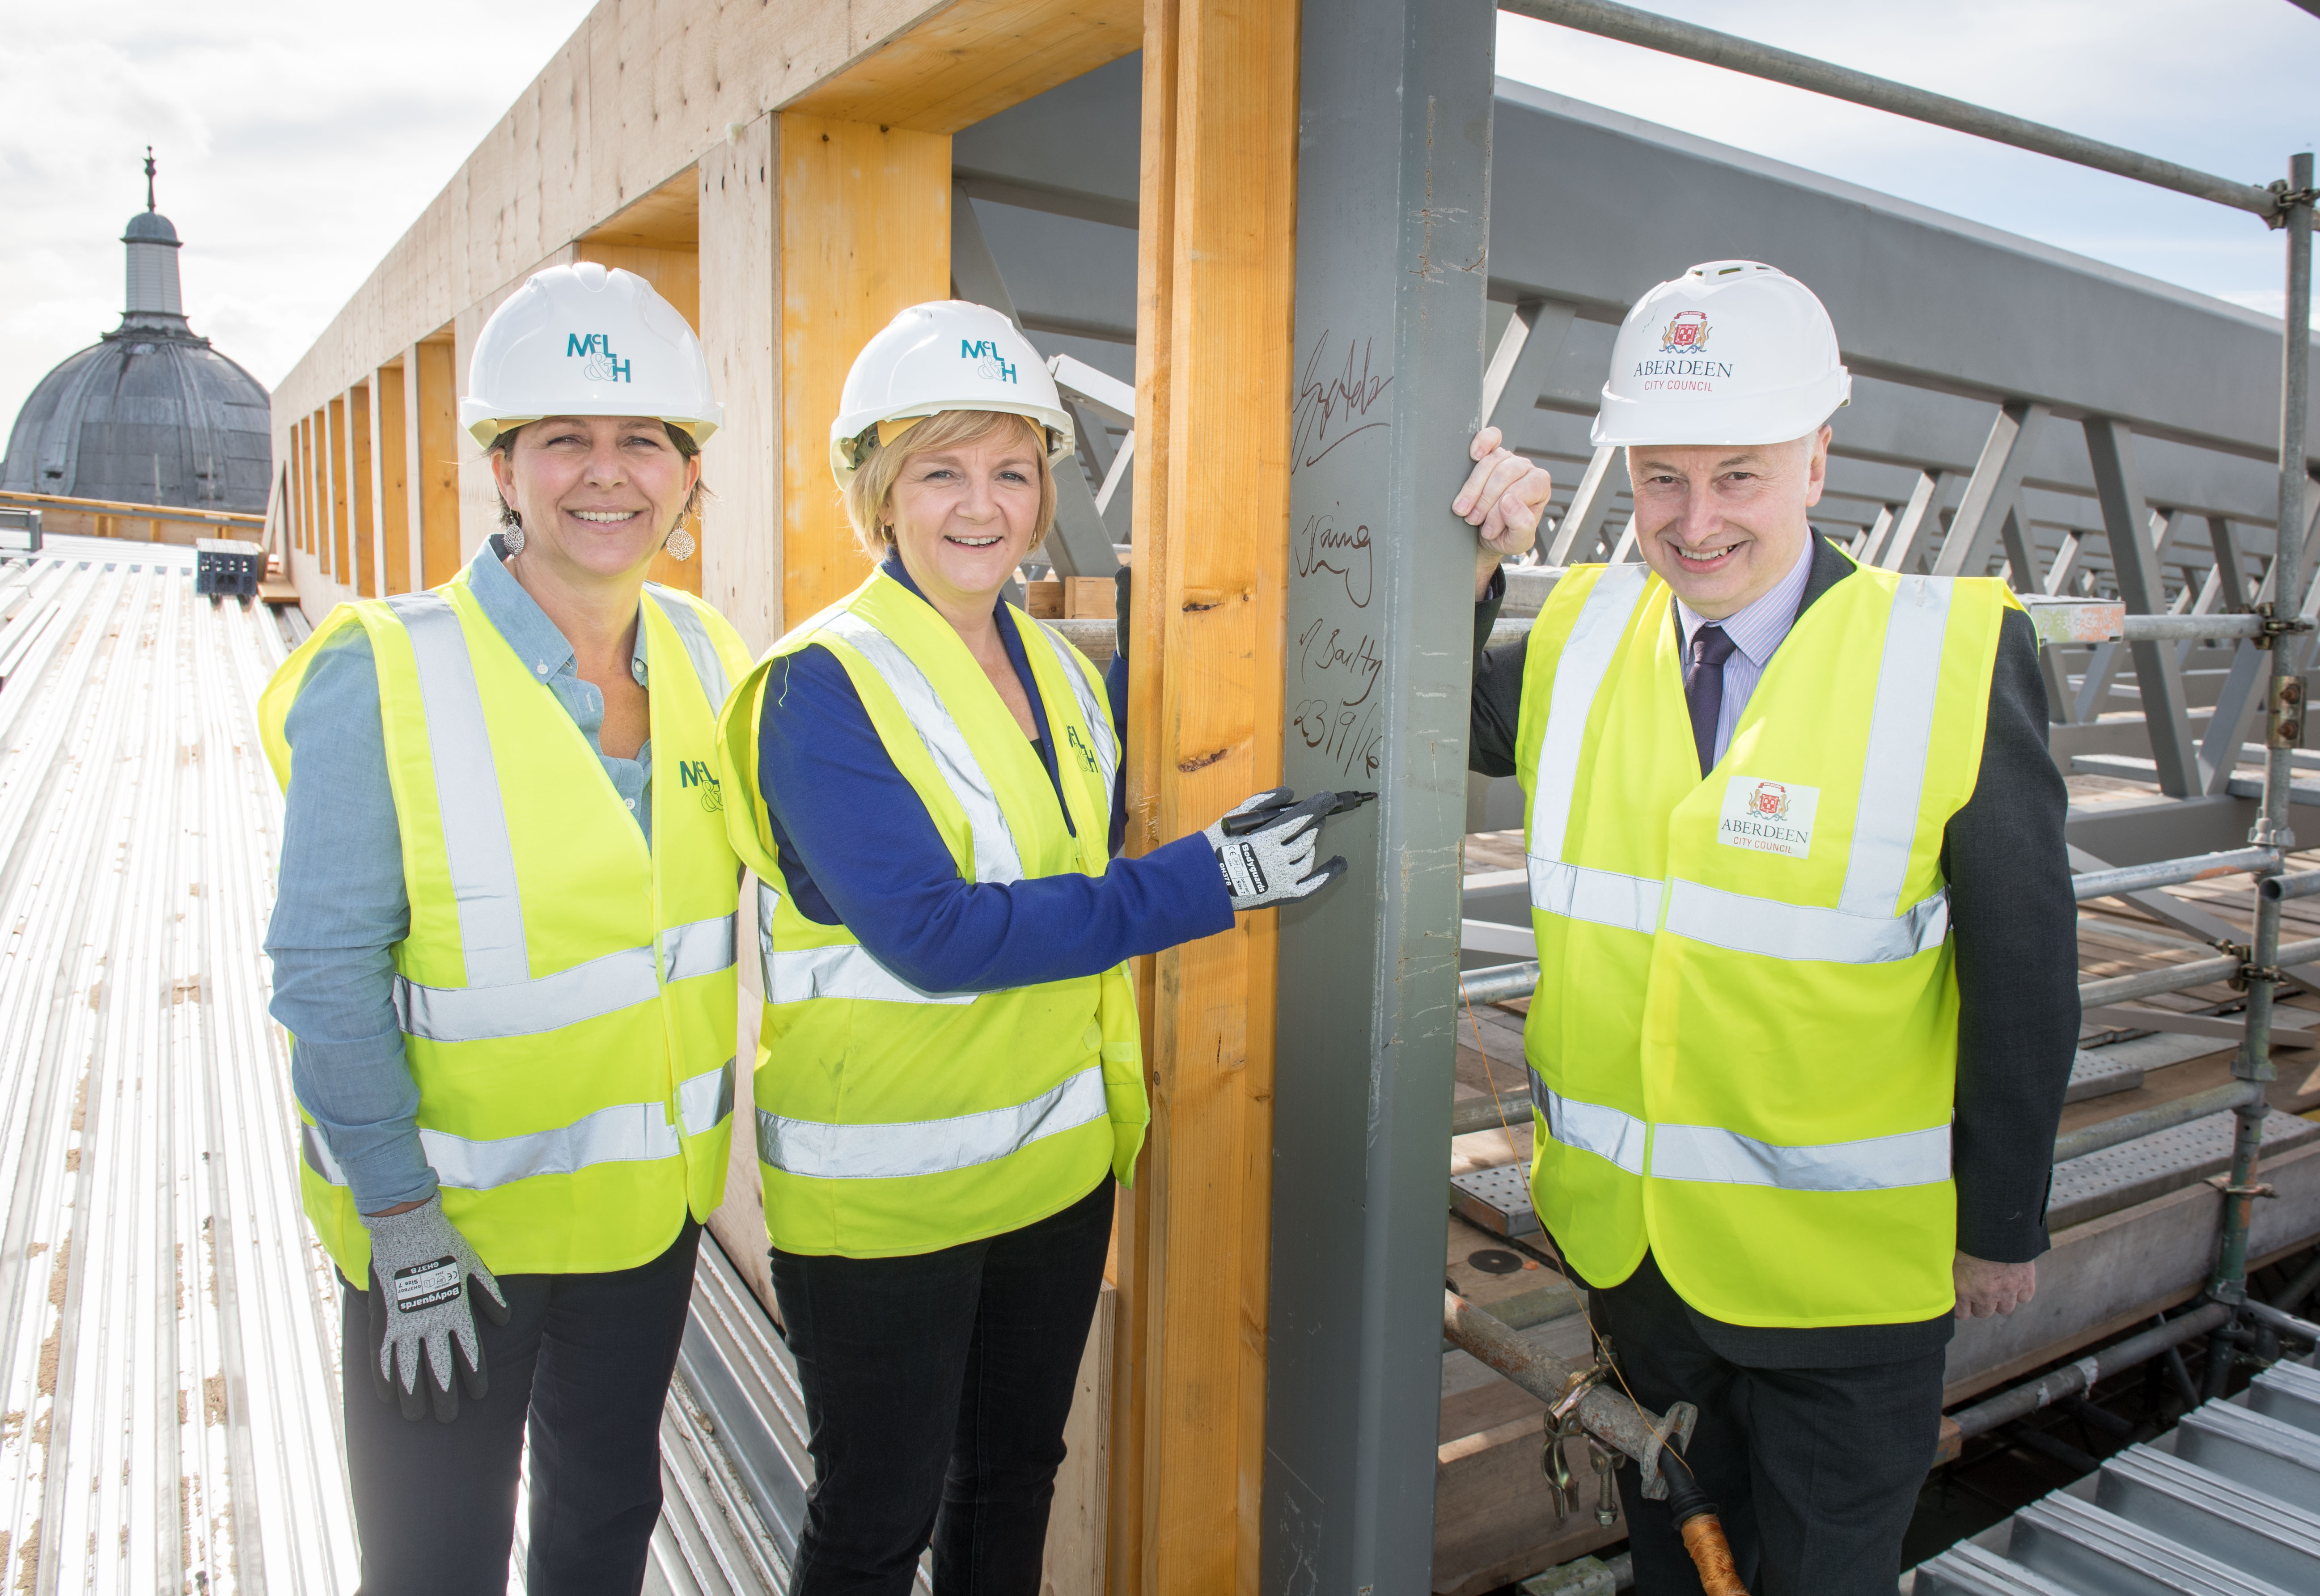 Aberdeen, Friday 23rd September 2016 Topping Out Ceremony to mark milestone in the redevelopment of Aberdeen Art Gallery Pictured is Deputy Council Leader Marie Boulton,   Council Leader Jenny Laing, Lord Provost of Aberdeen George Adam,  Picture by Michal Wachucik / Abermedia